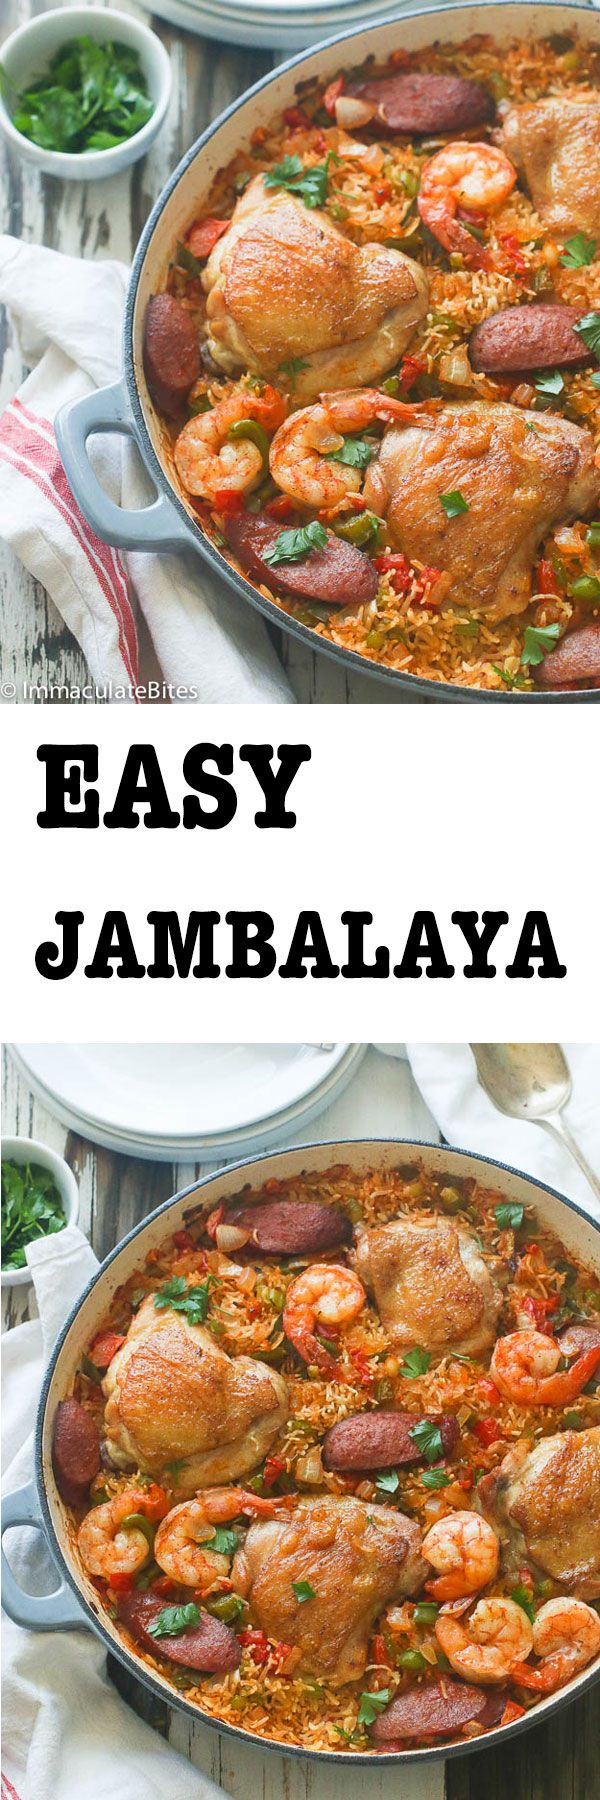 Easy Jambalaya! A Classic Southern one pot dish with bold flavors made easy!Easyenough for a weeknight meal, yet makes a sumptuous mealwhen entertaining. Simply Delicious !! Although it originates from Louisiana, it has French and Spanish roots, the use of spices is reminiscent of what you'll find in African and Caribbean Cuisine. For those unfamiliar …